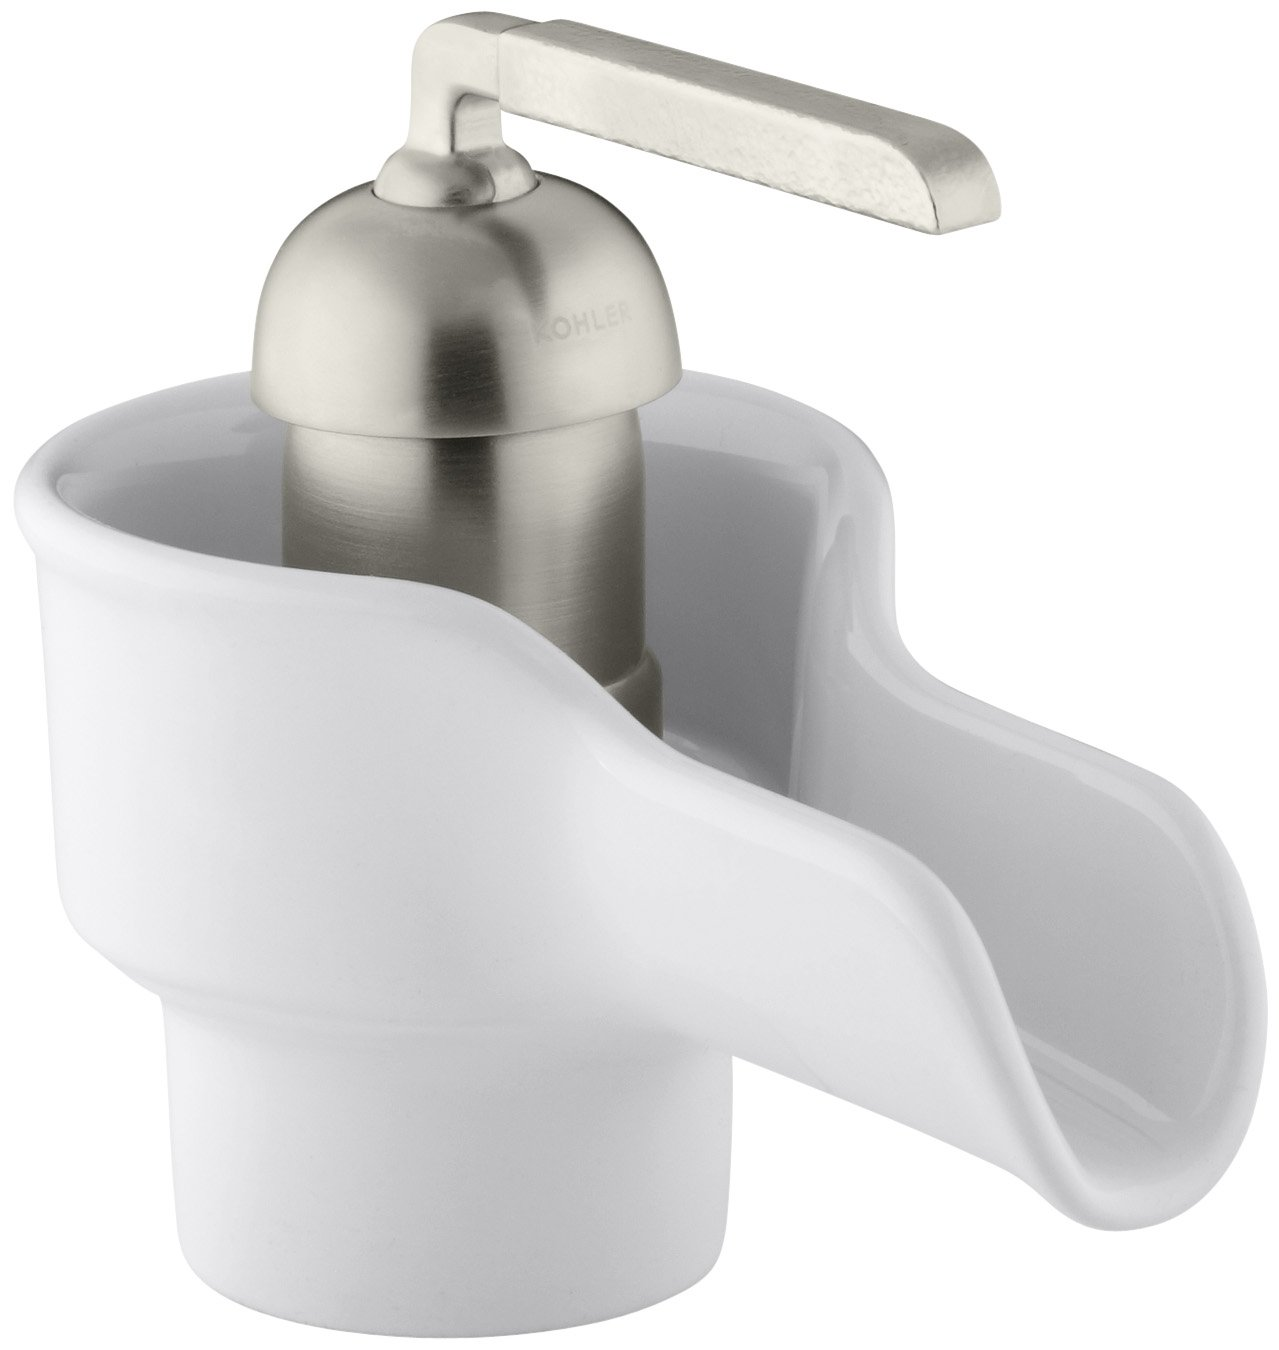 KOHLER K-11000-0 Bol Ceramic Faucet, White - Touch On Bathroom ...